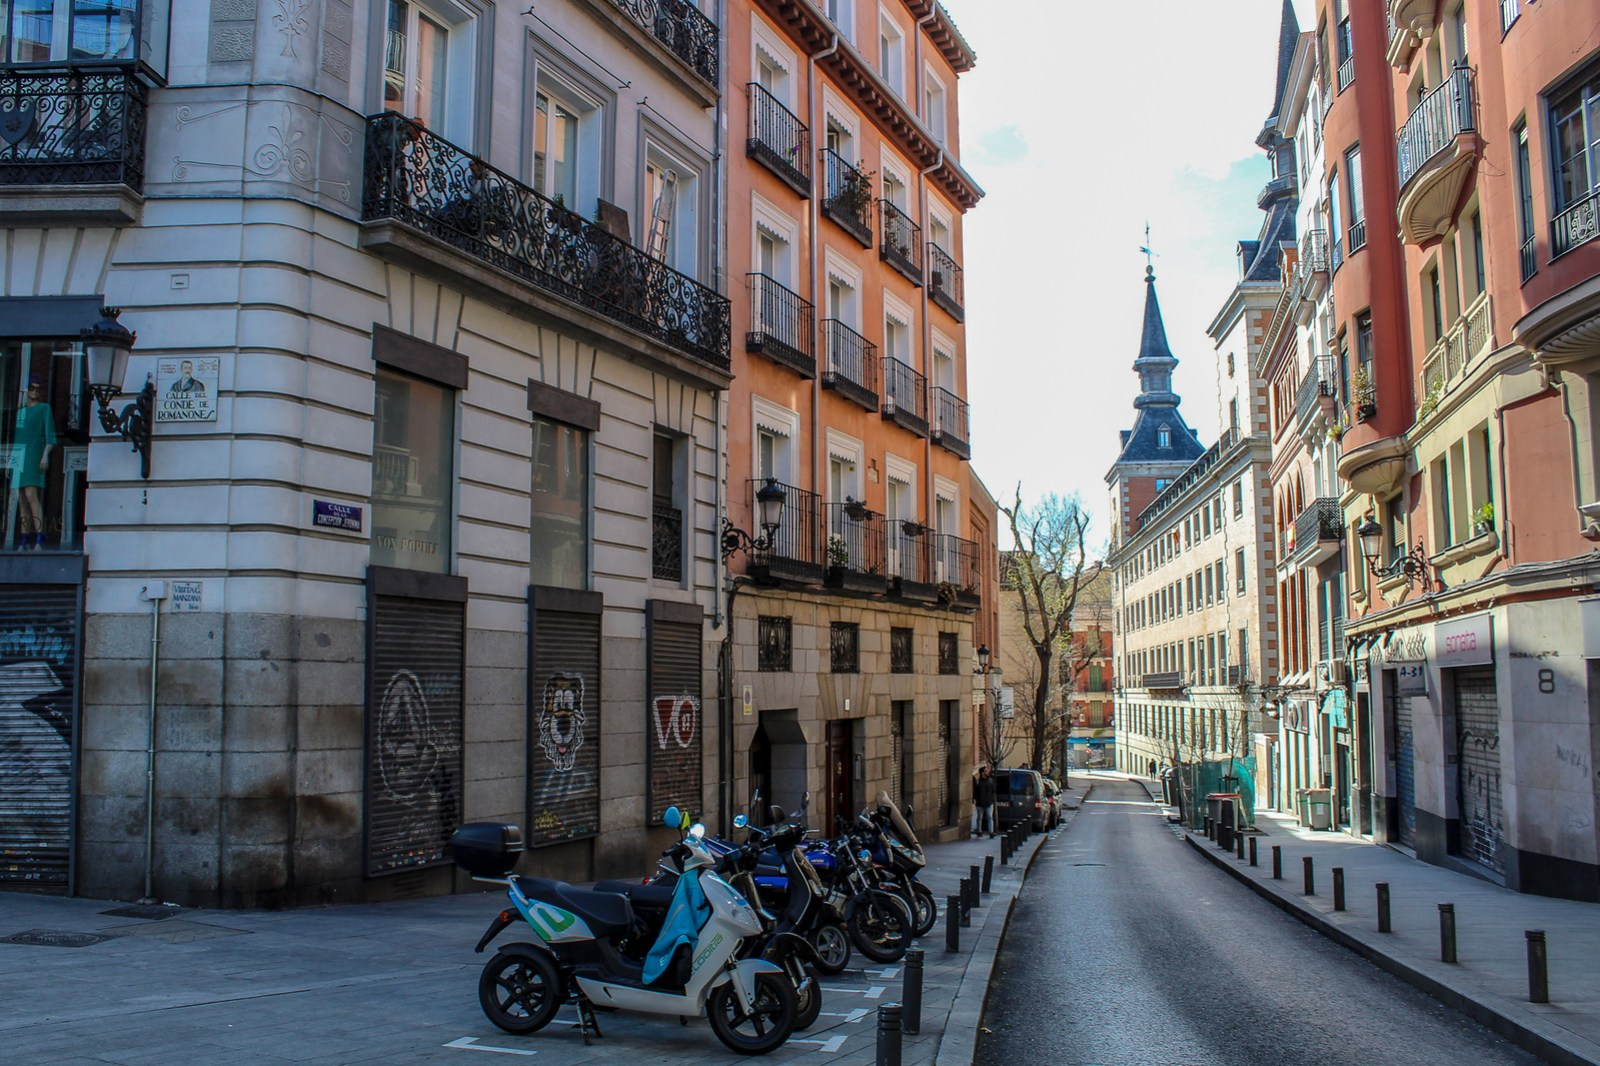 i experienced a lot of travel stress reaching madrid